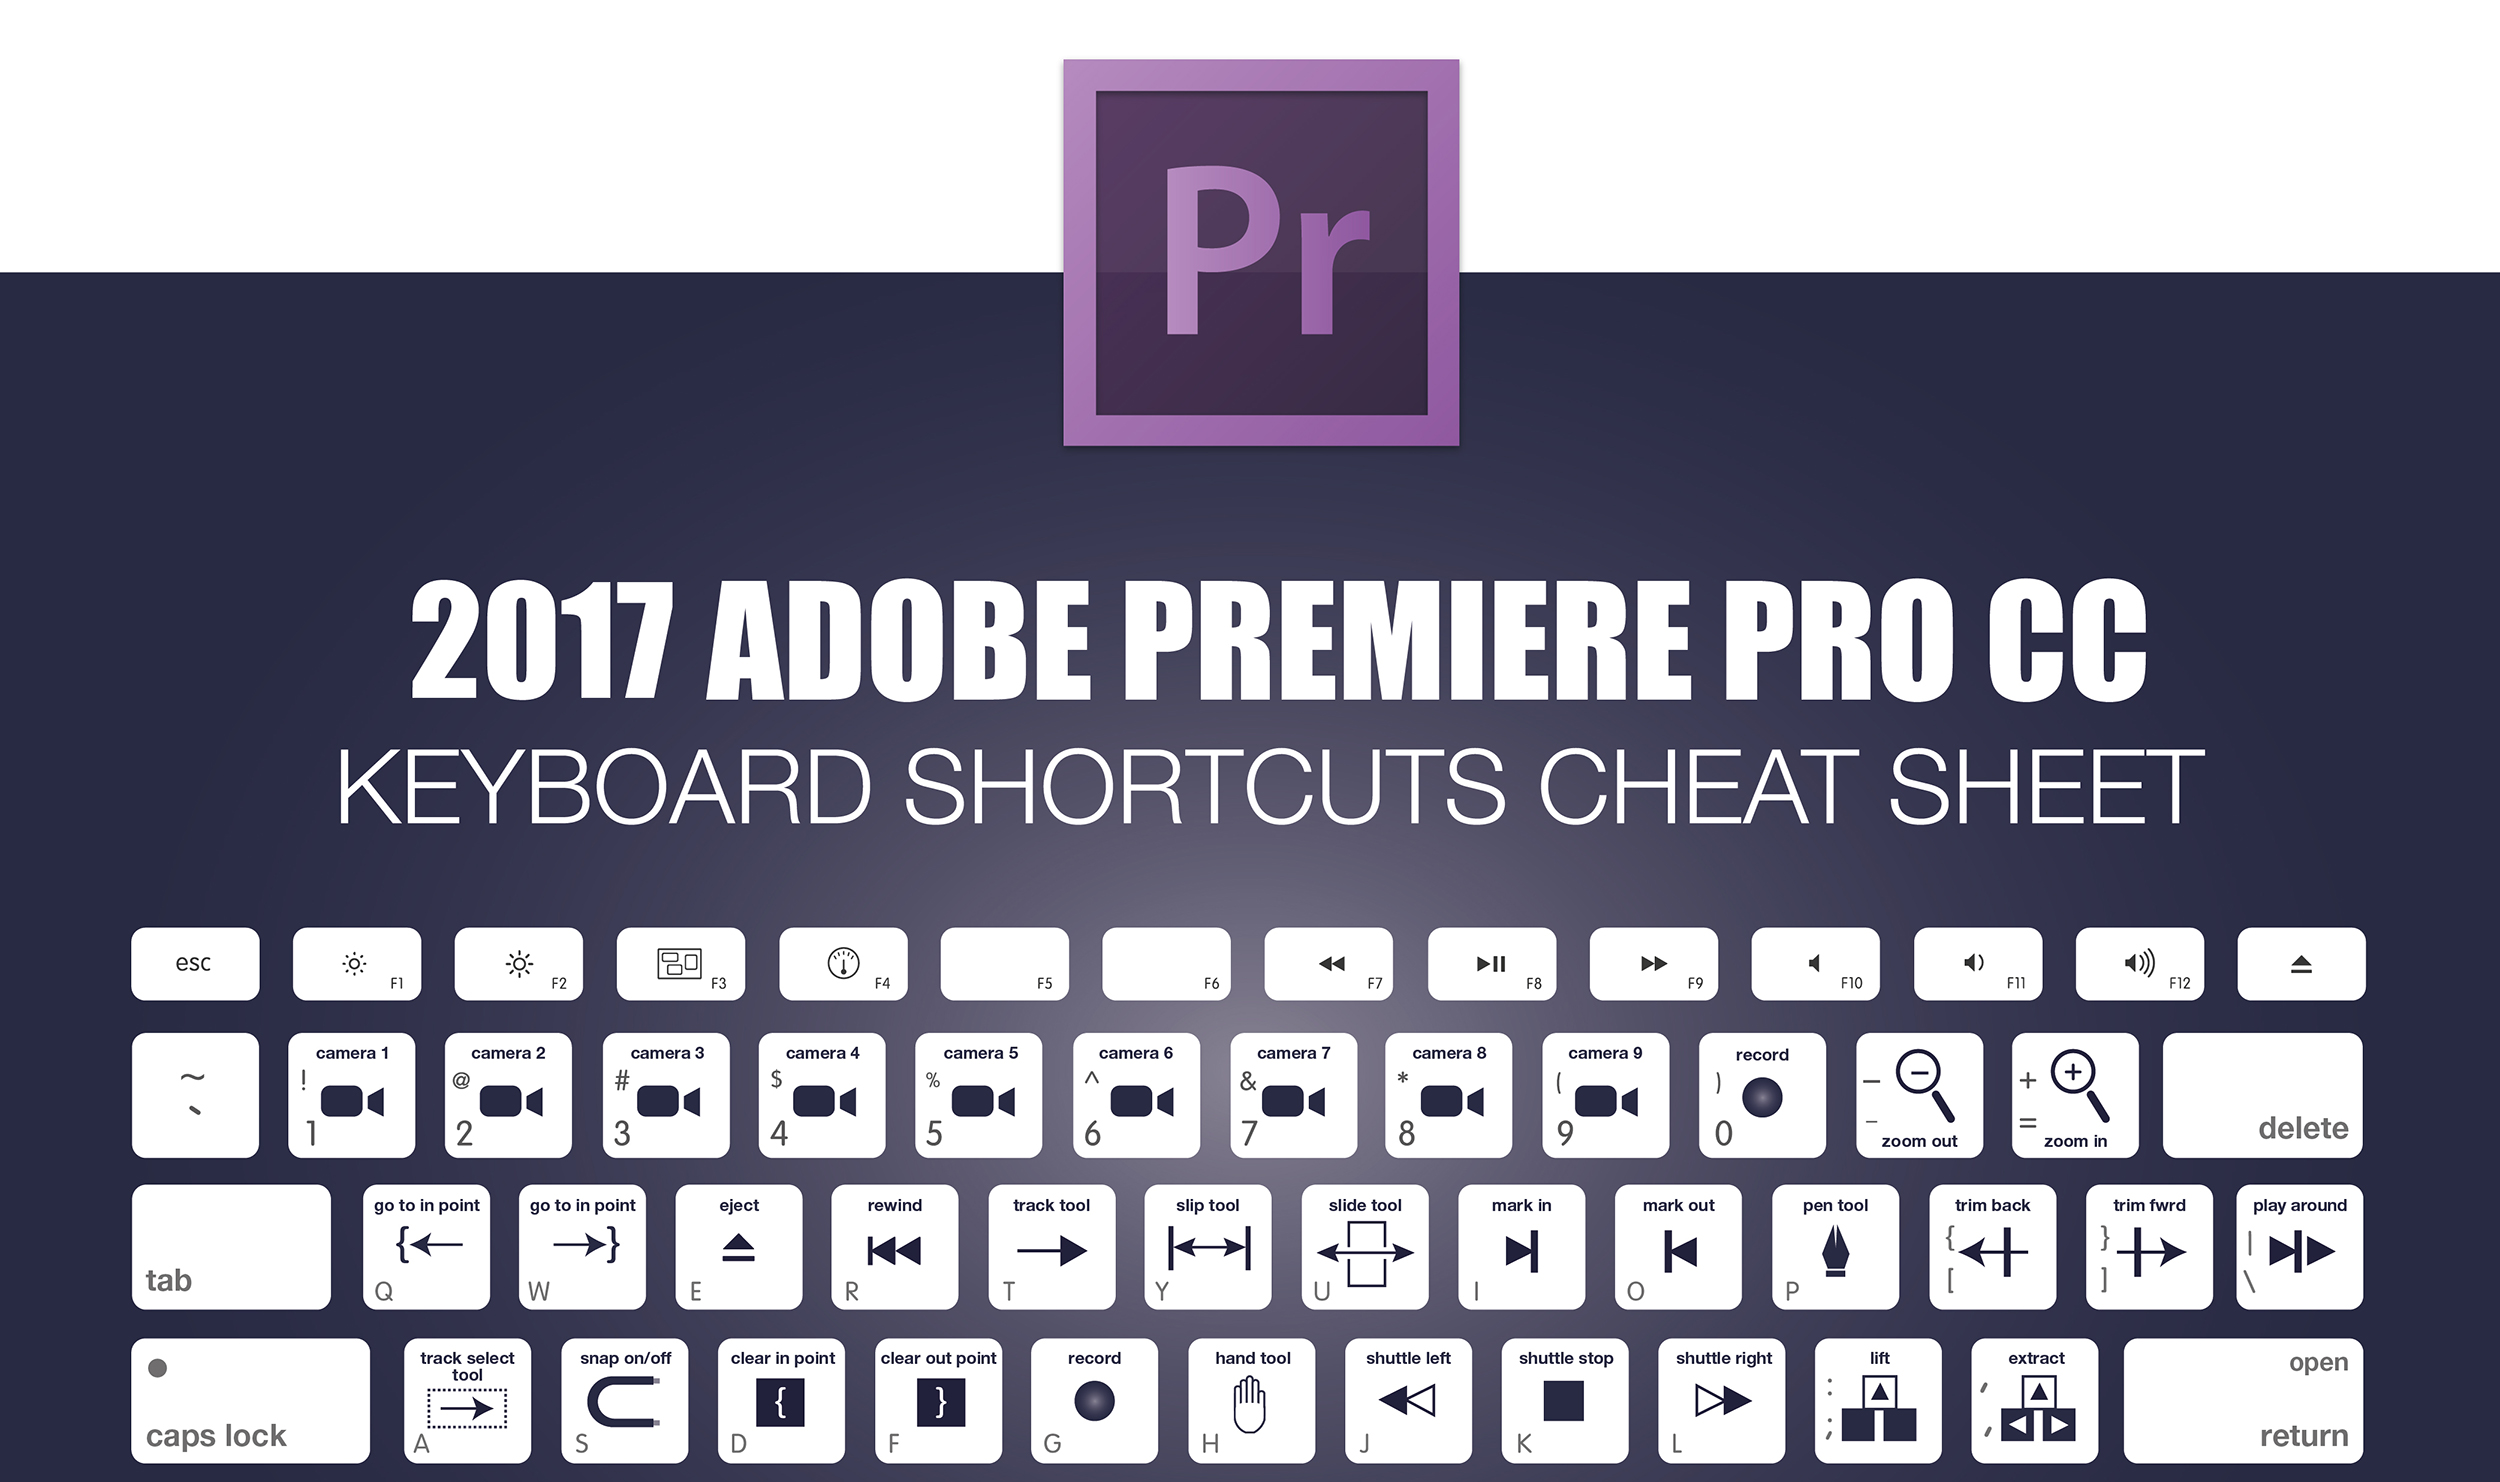 2017 Adobe Premiere Pro Keyboard Shortcuts Cheat Sheet - Make A